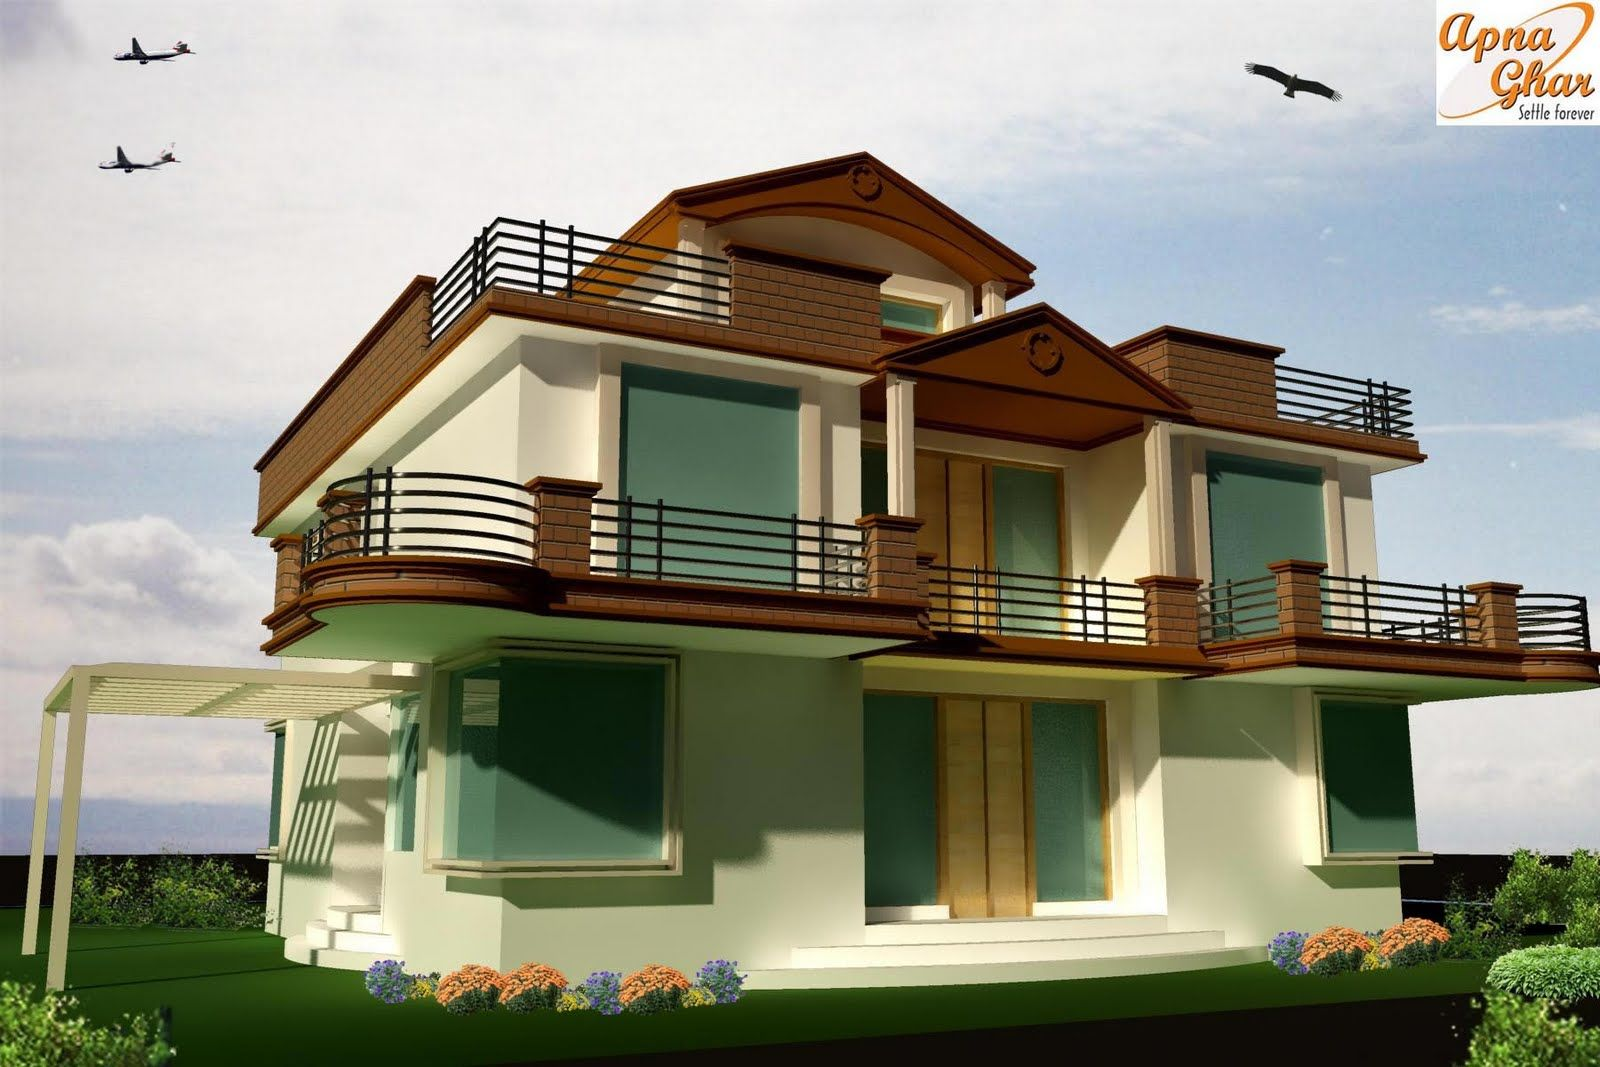 Architectural designs modern architectural house plans for Modern architecture design